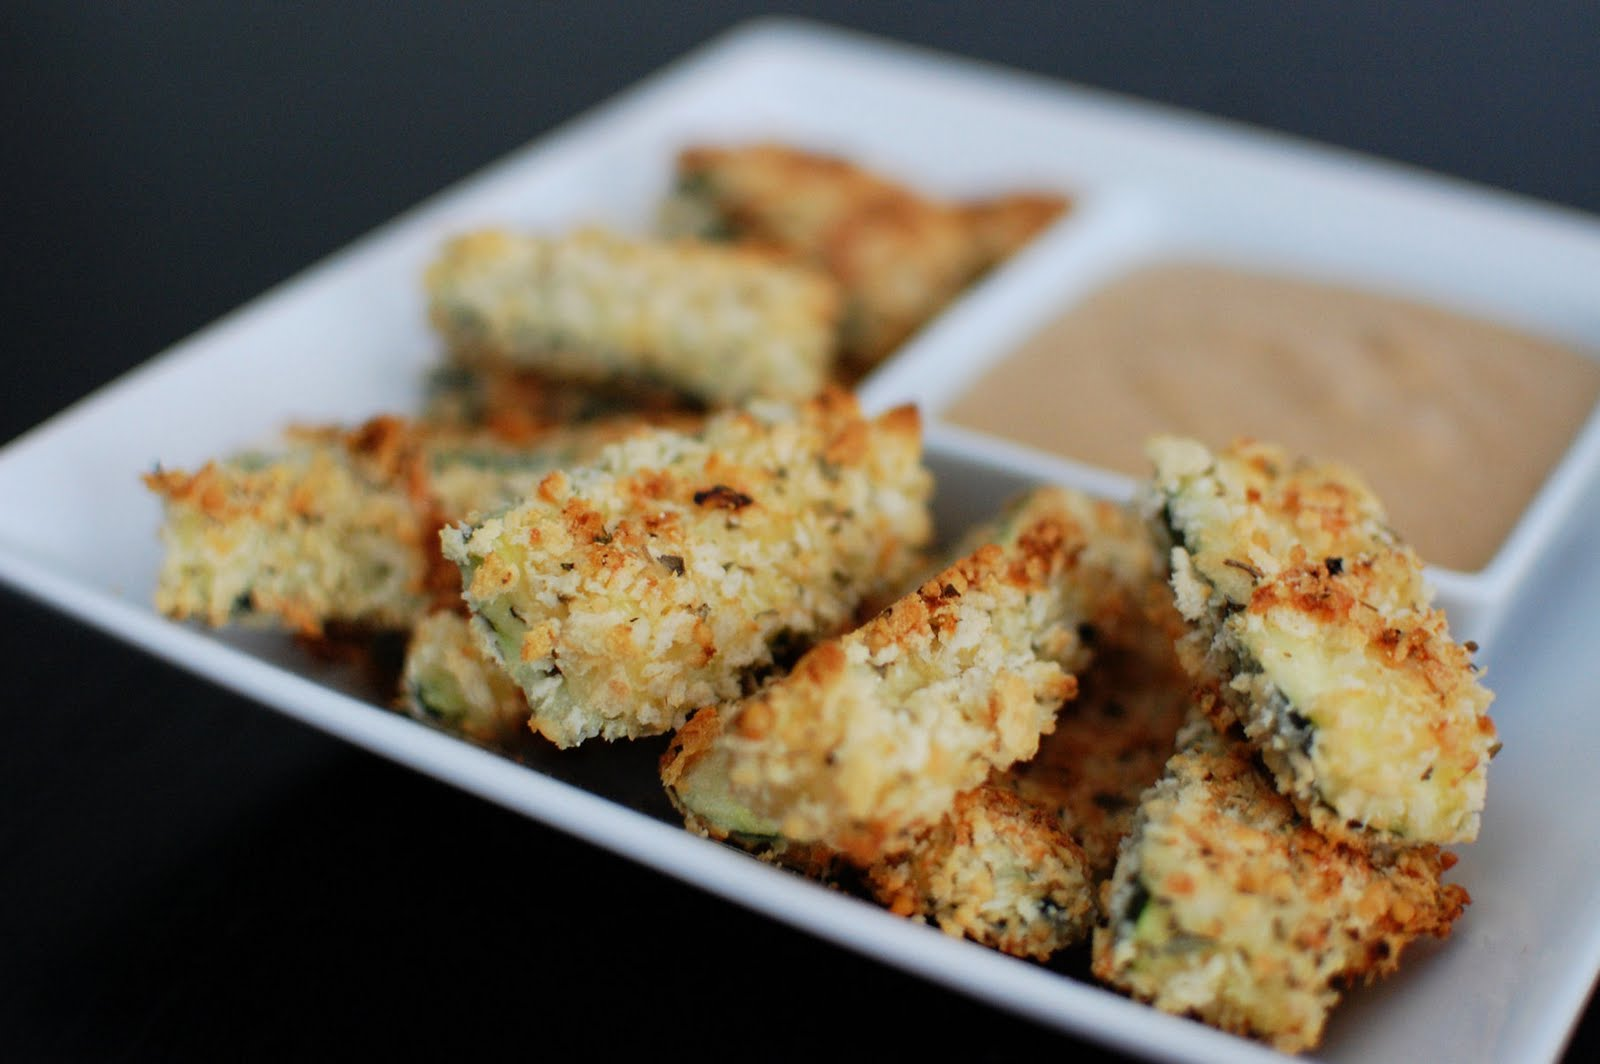 Baked Zucchini Sticks with Caramelized Onion Dipping Sauce | Beantown ...